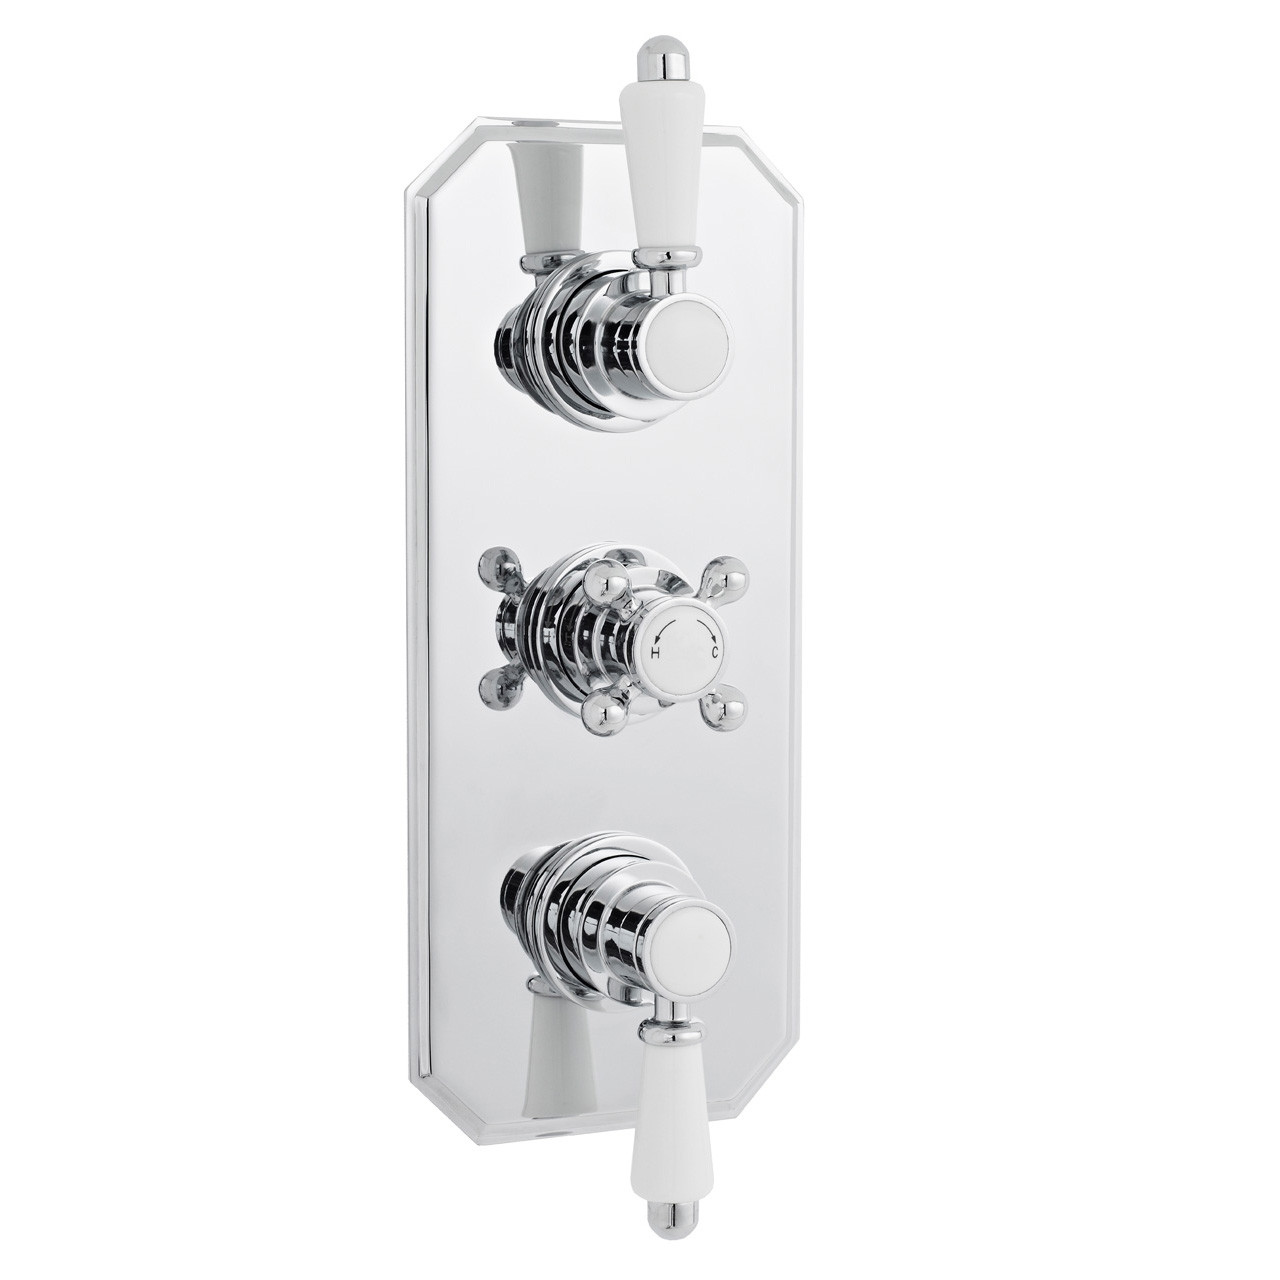 Ultra Triple Concealed Thermostatic Valve - ITY317